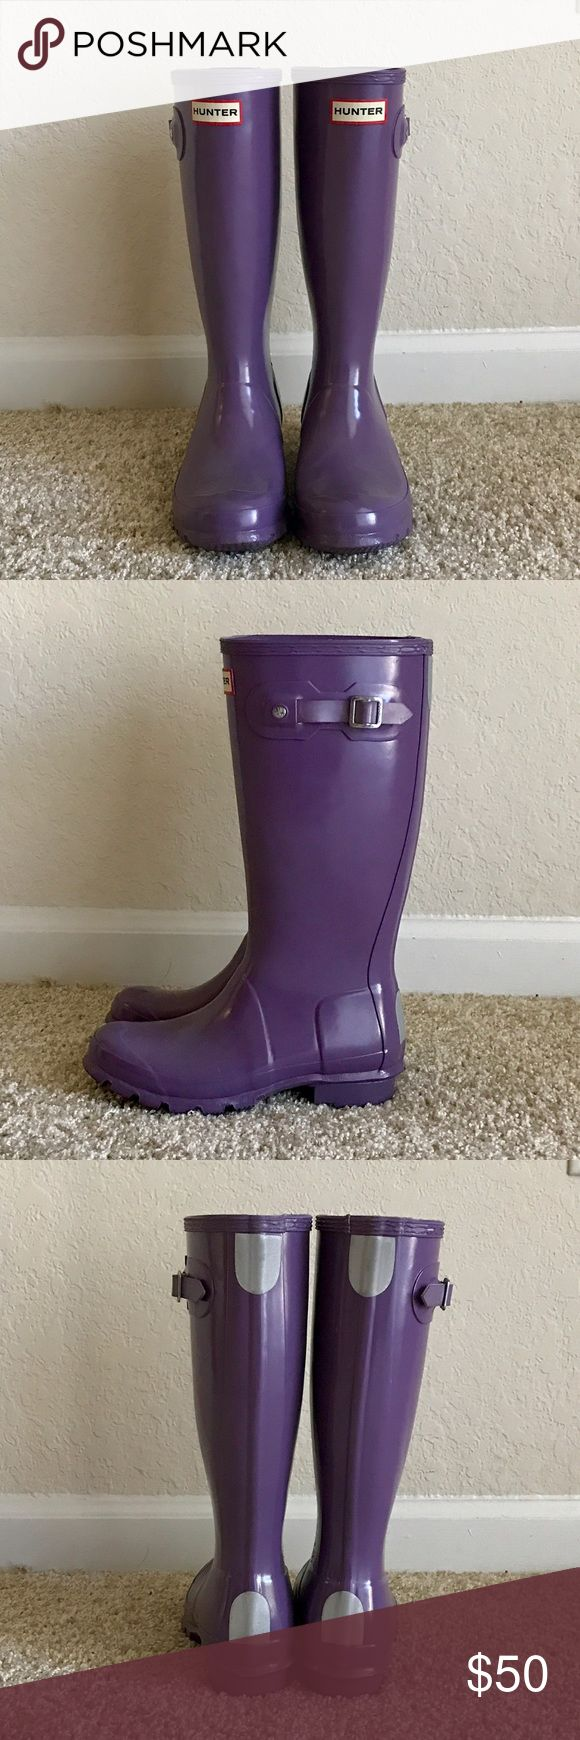 Original Kids Hunter Rain Boots Worn a few times but in great condition! These are kids however they fit a size 6 in women's. I am 5'3 and they come up to the perfect spot below my knees. Hunter Boots Shoes Rain & Snow Boots